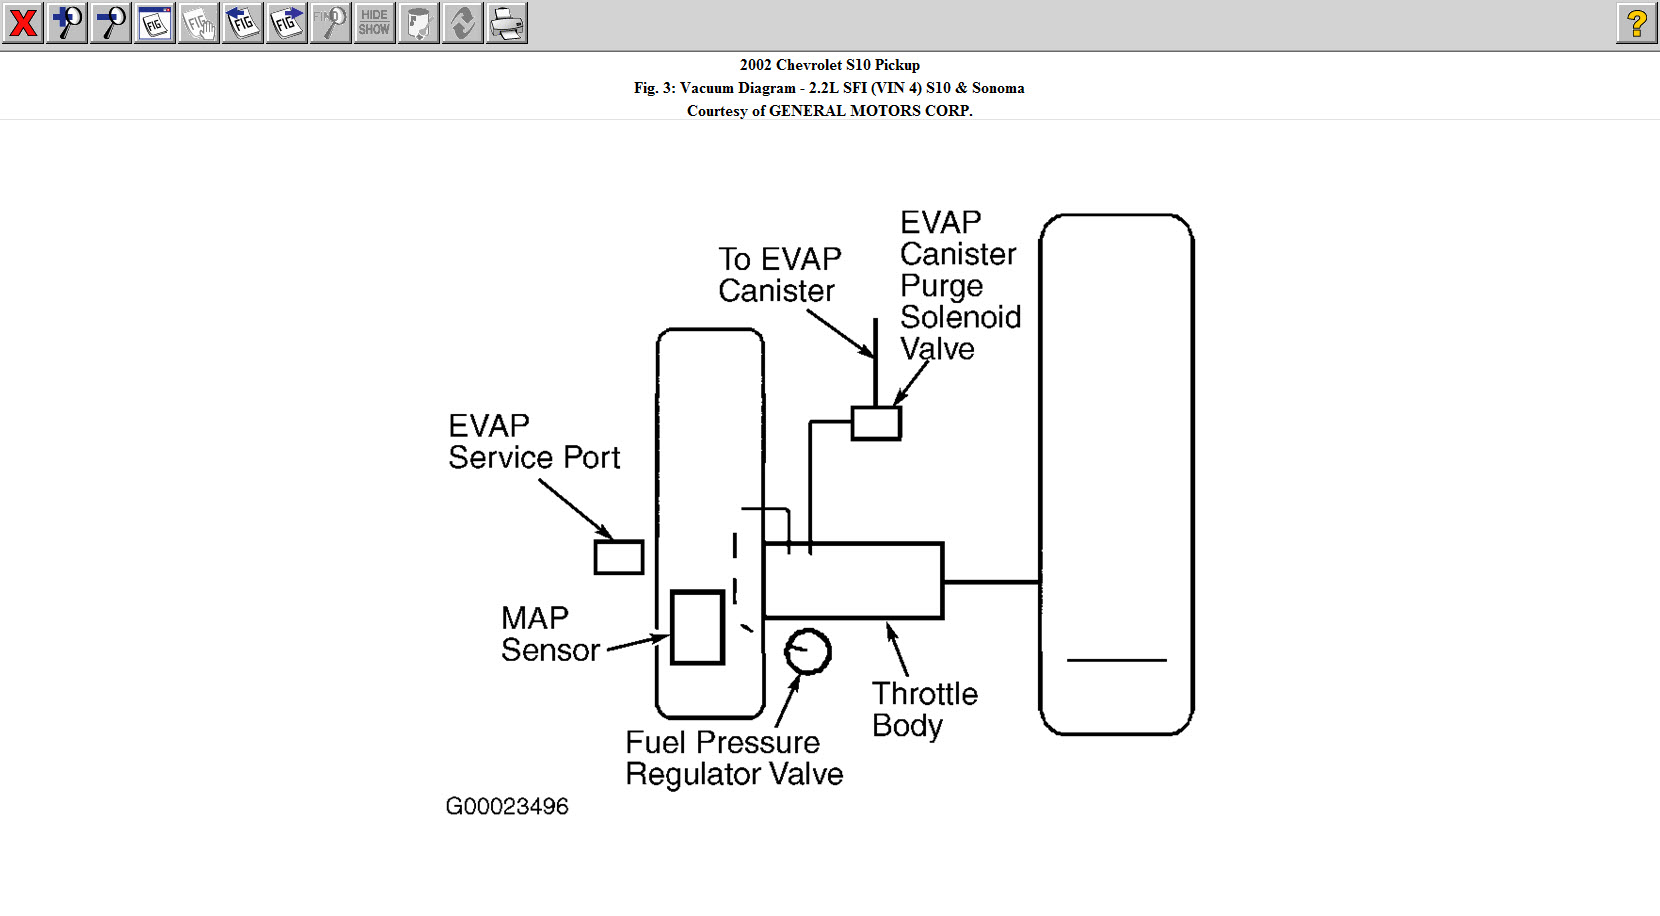 34 Chevy S10 43 Vacuum Diagram